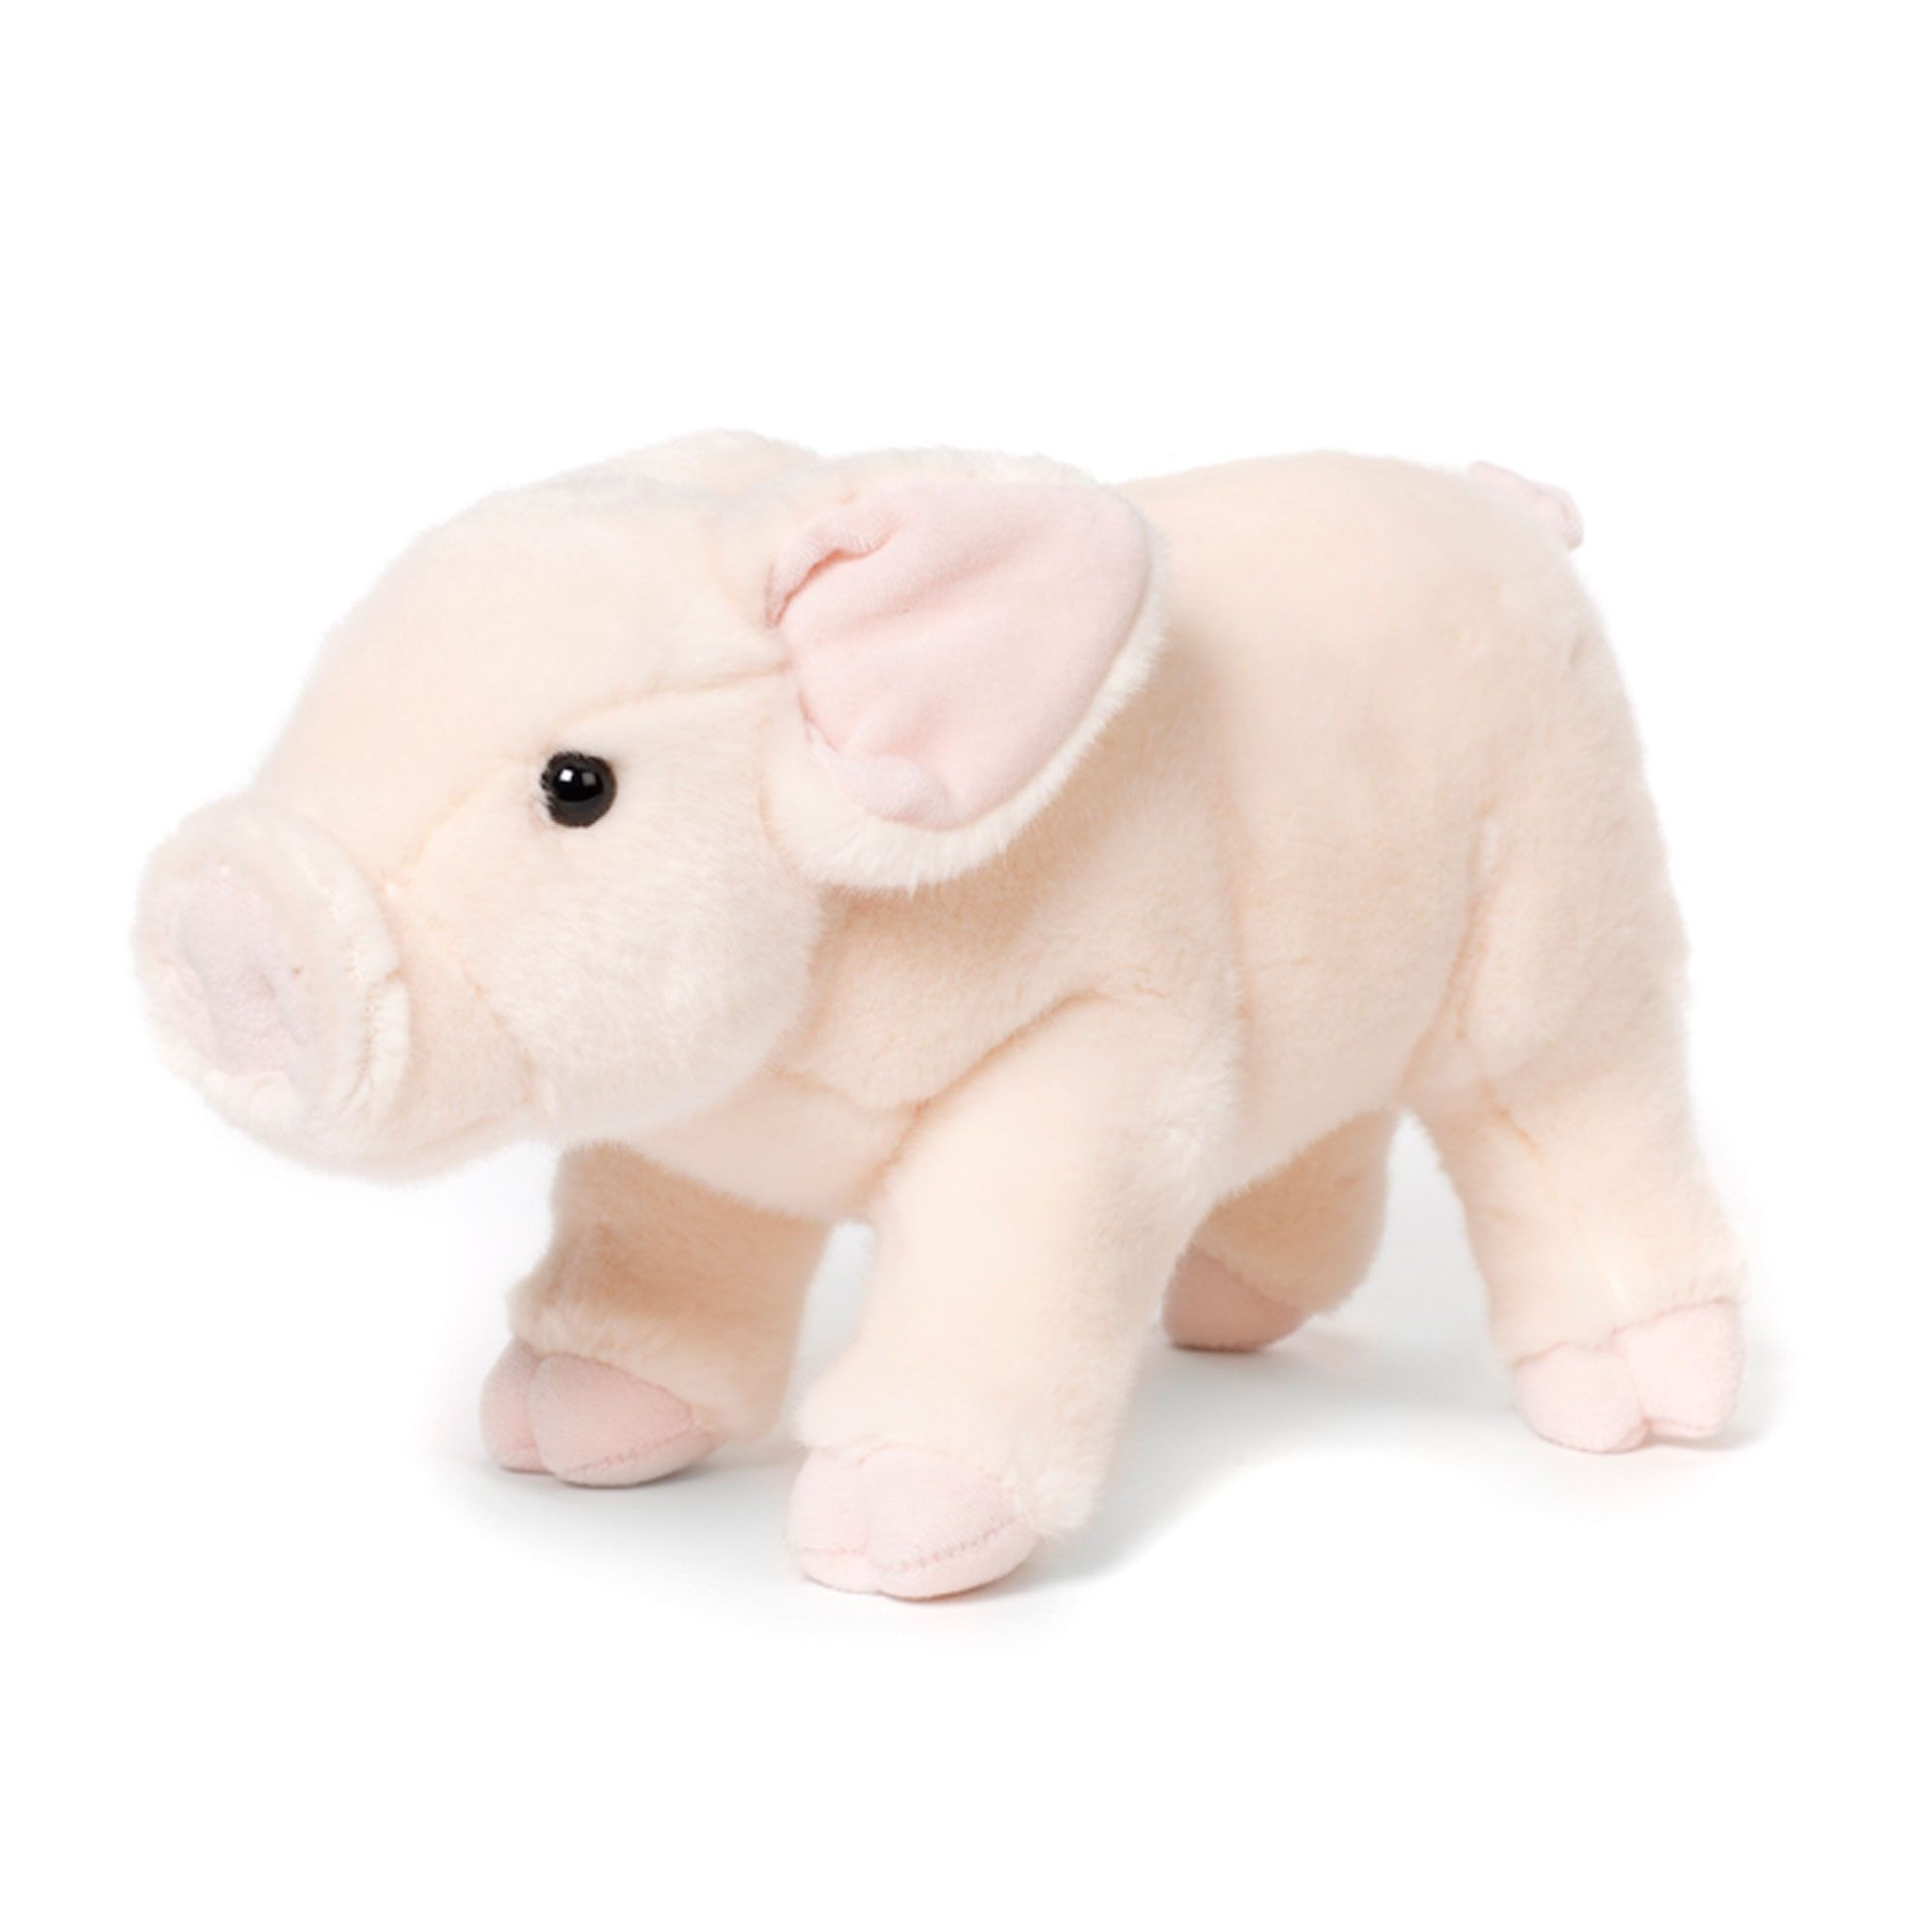 Curly soft pig toy 14 inch